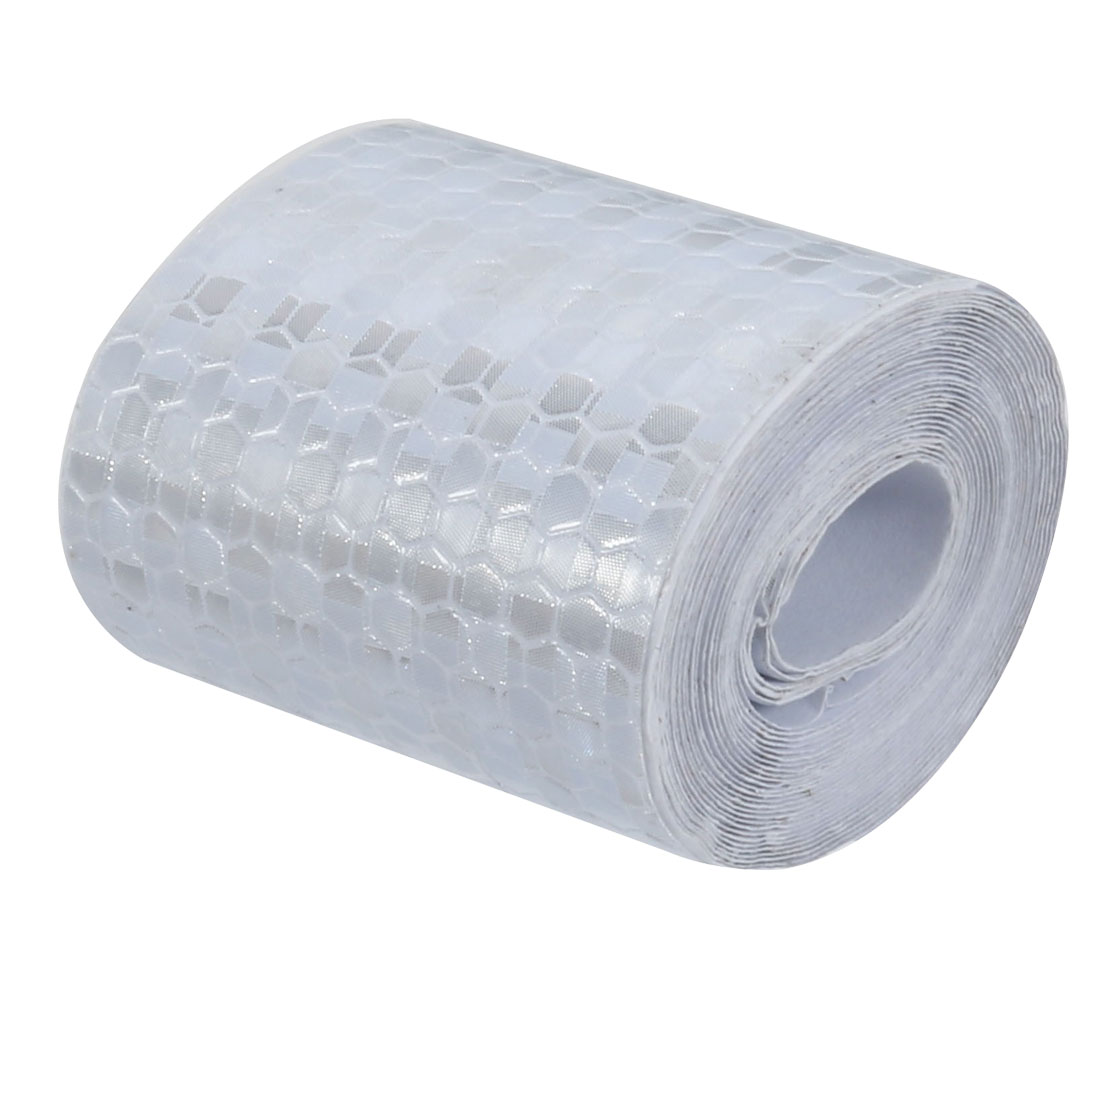 5cm Width 3Meter Long Honeycomb Adhesive Reflective Warning Tape Silvery White